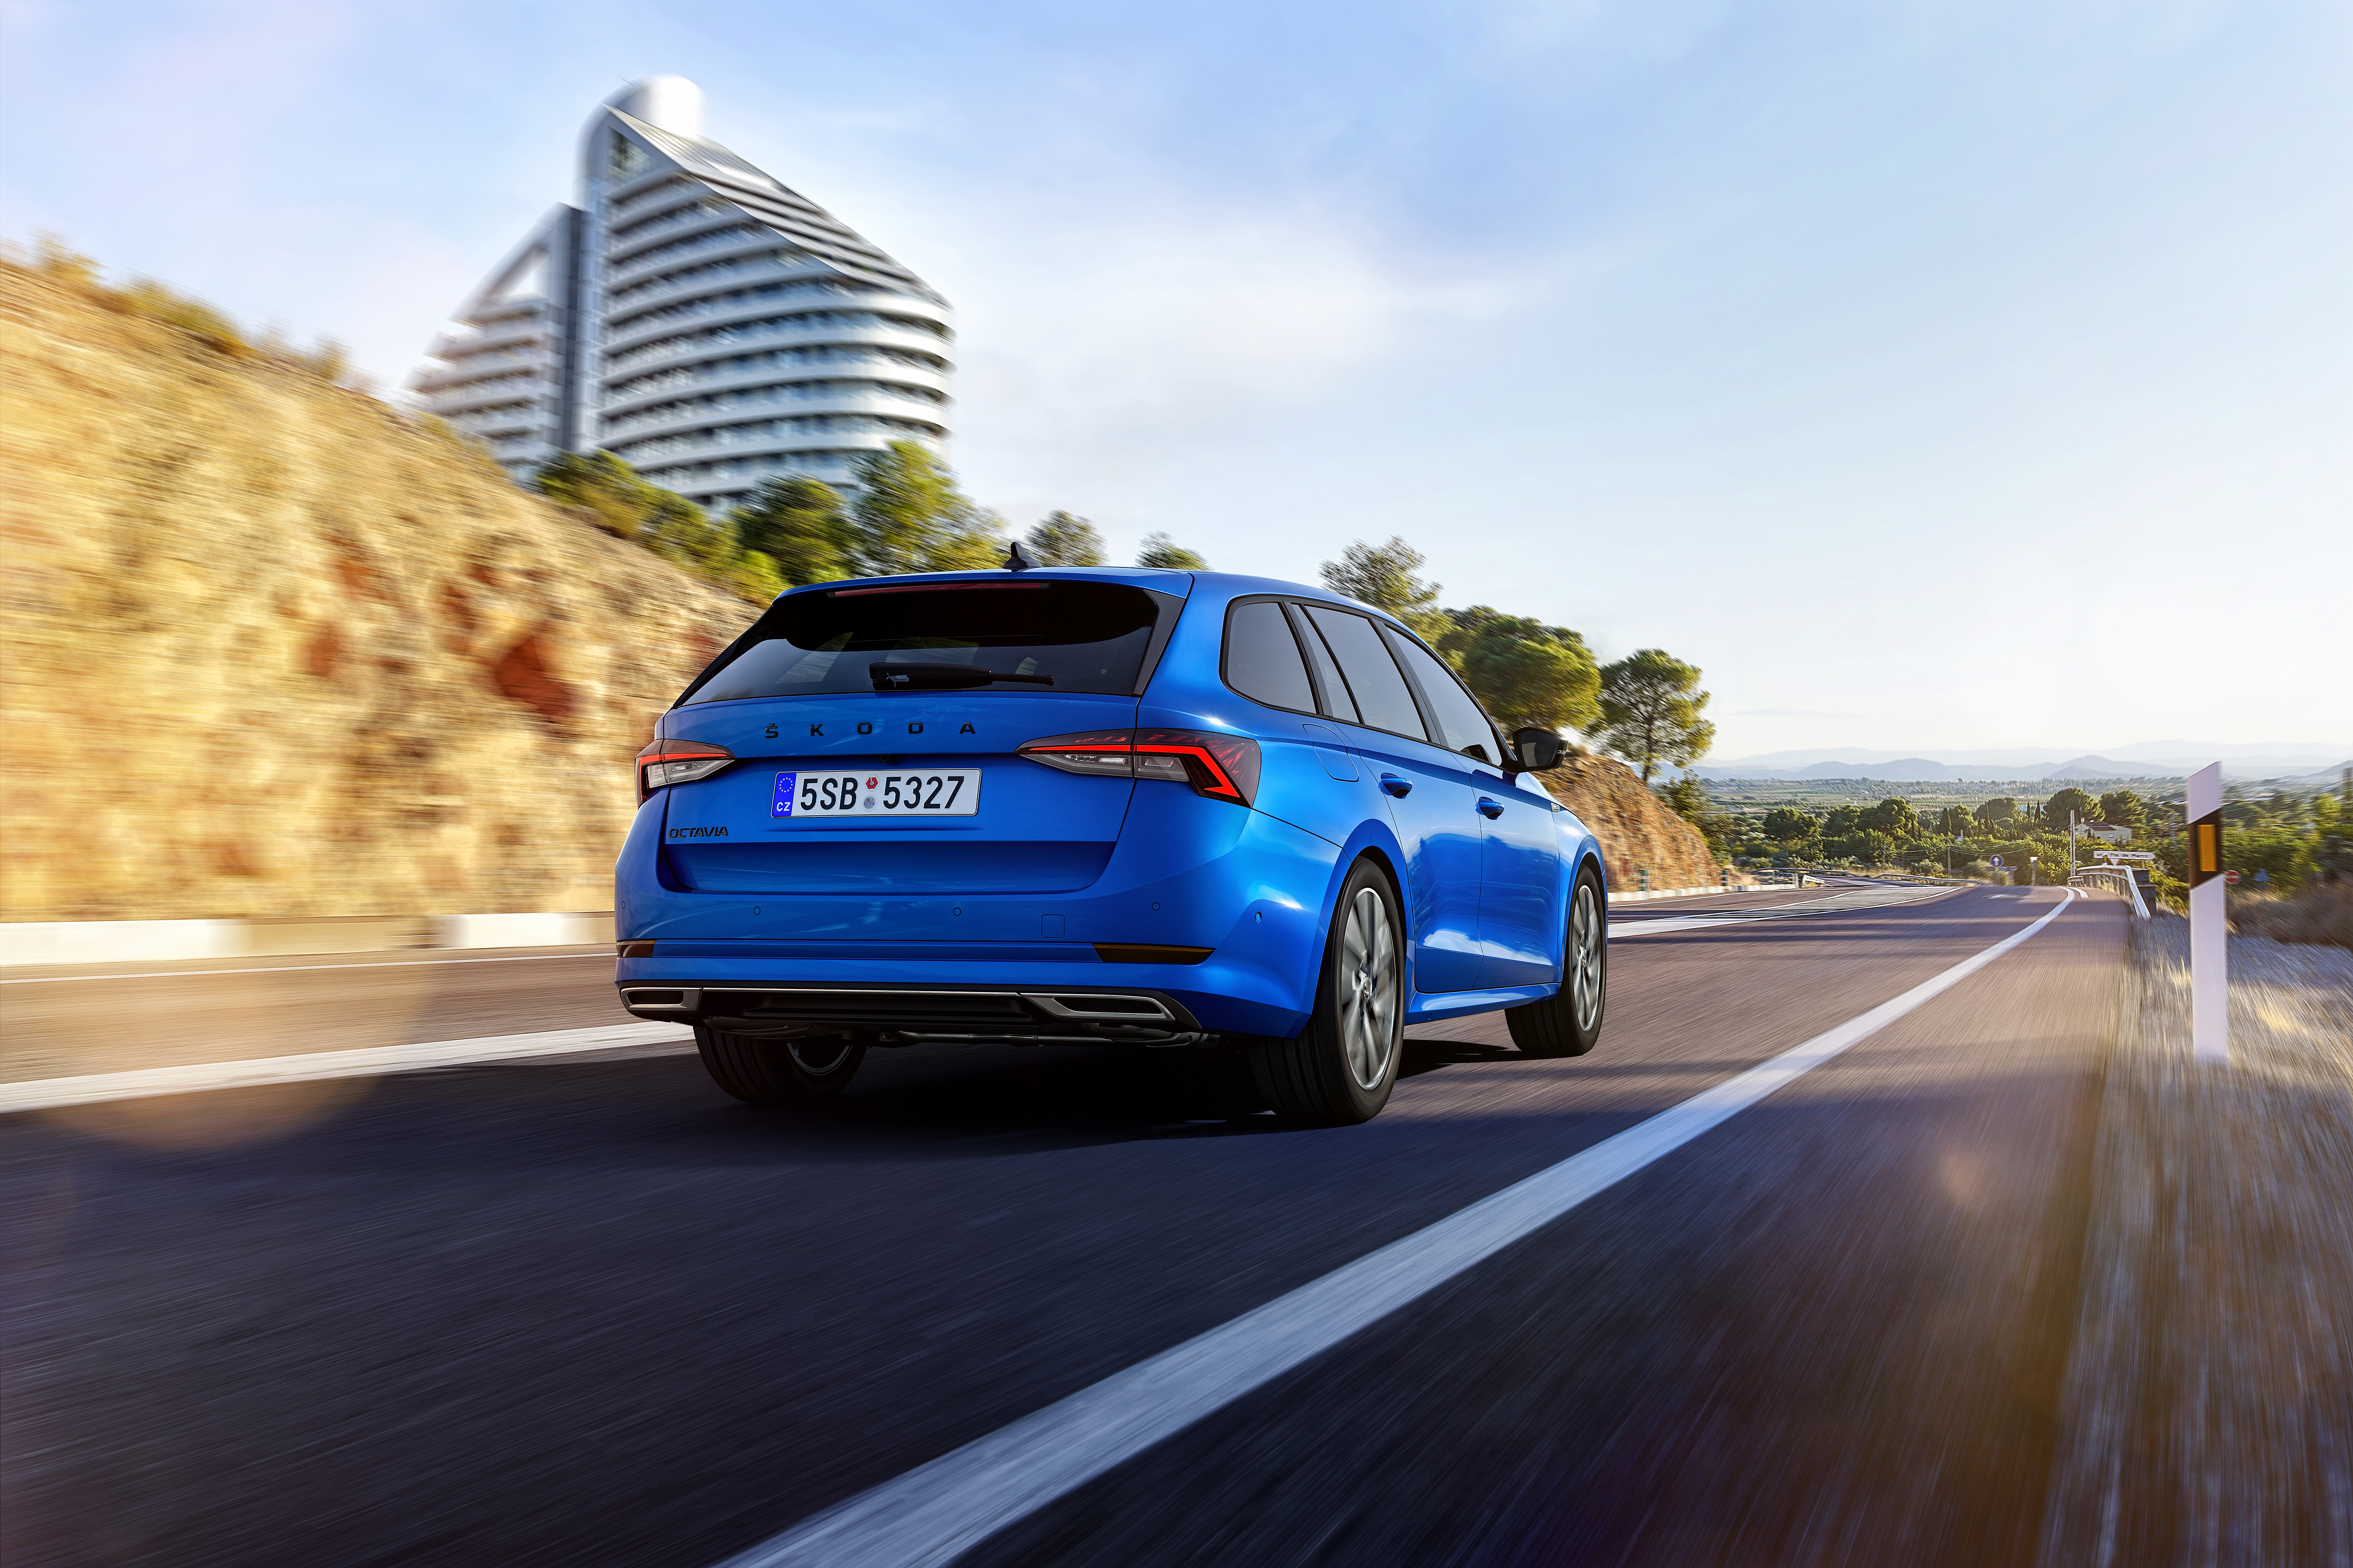 SKODA OCTAVIA available as SPORTLINE version for the first time - Image 3